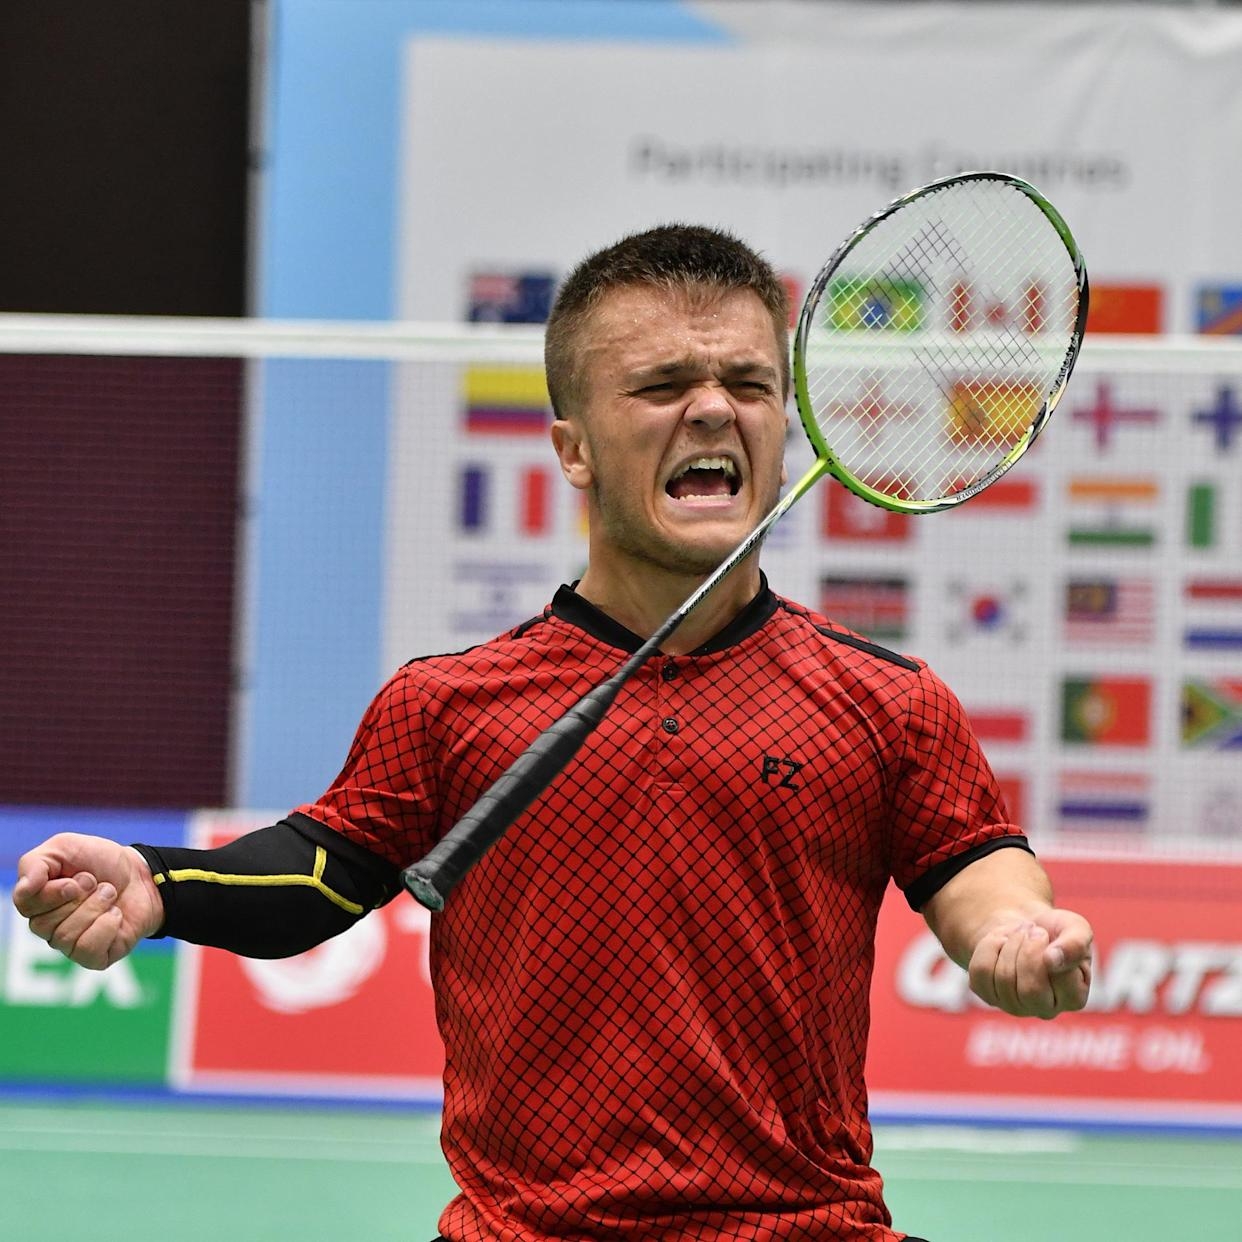 Jack Shephard clinched world gold in 2017 (Badminton Photo/PA)